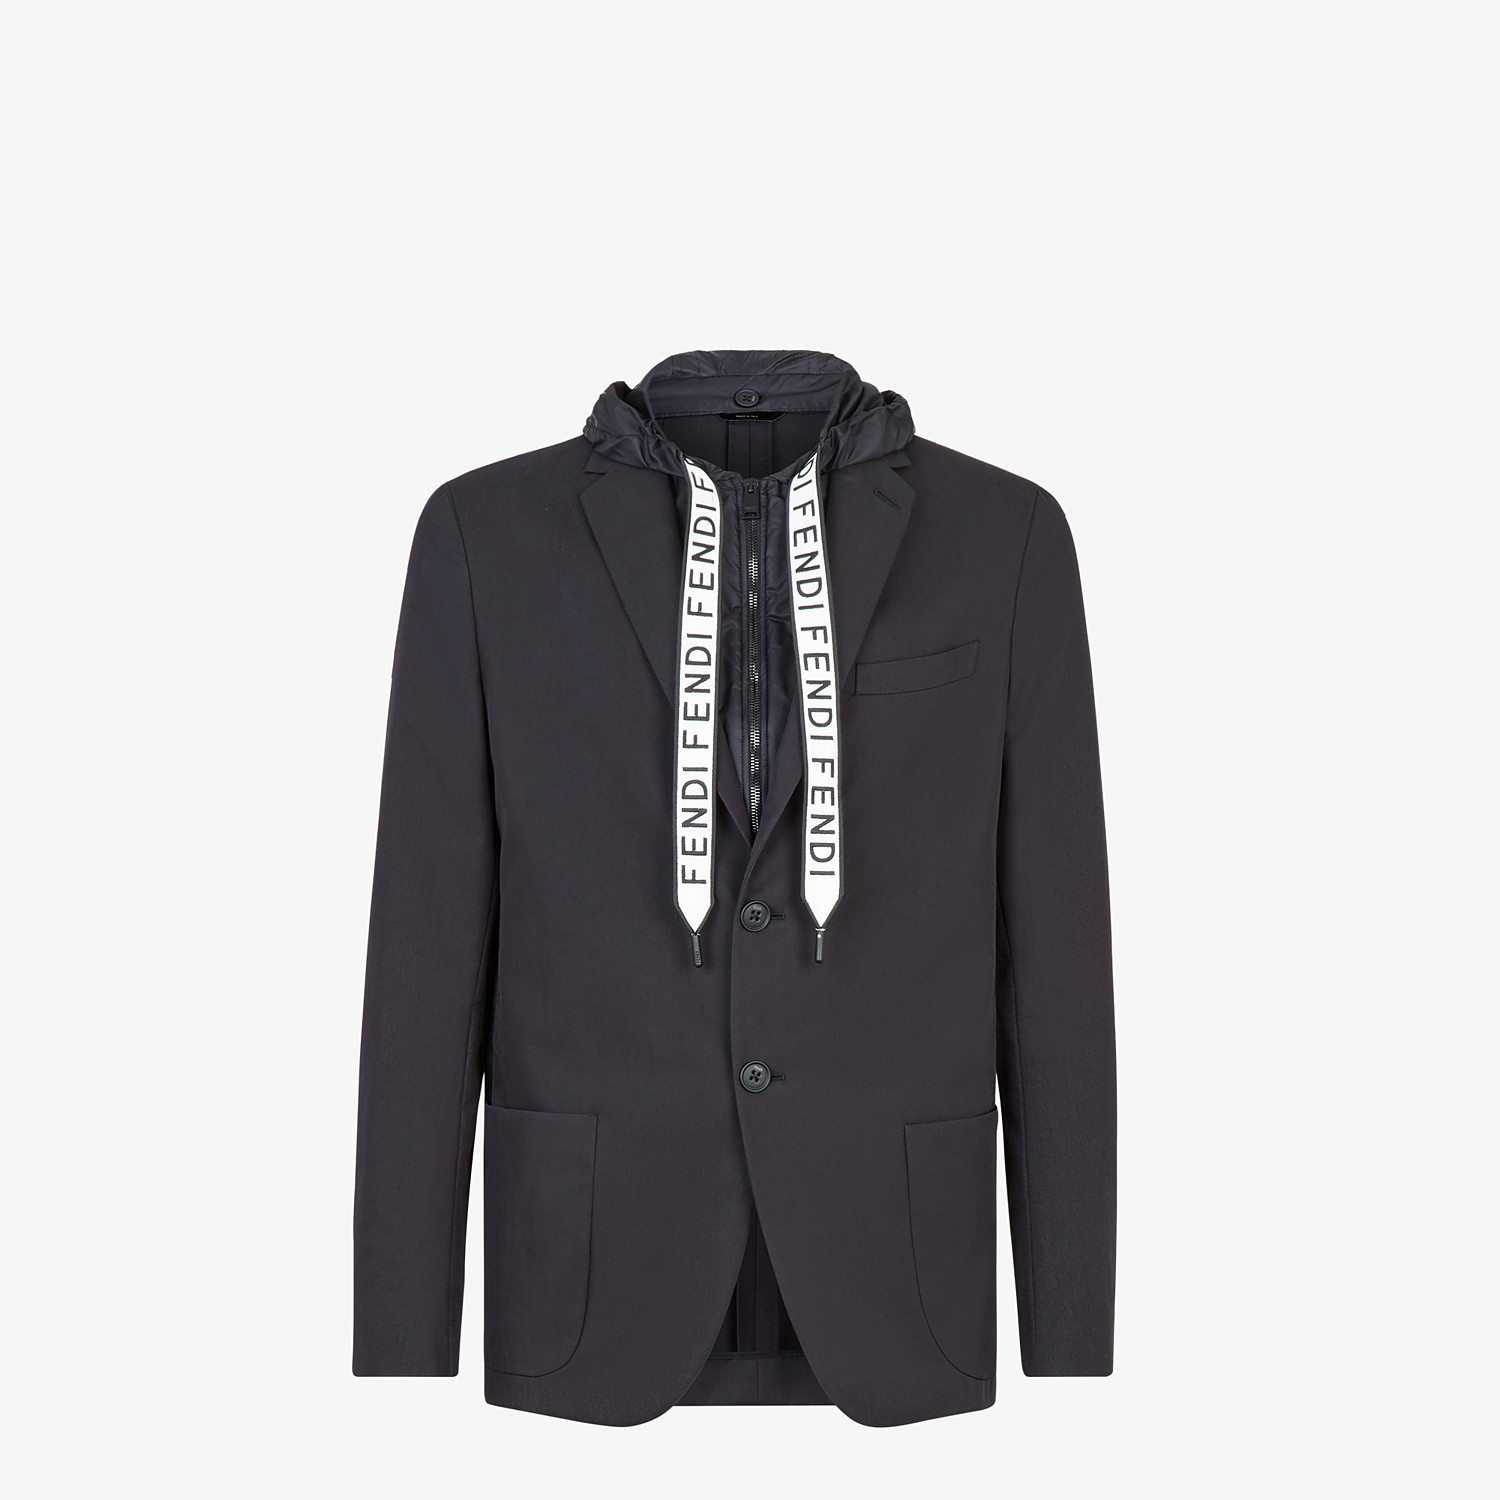 FENDI JACKET - Black cotton blazer - view 1 detail